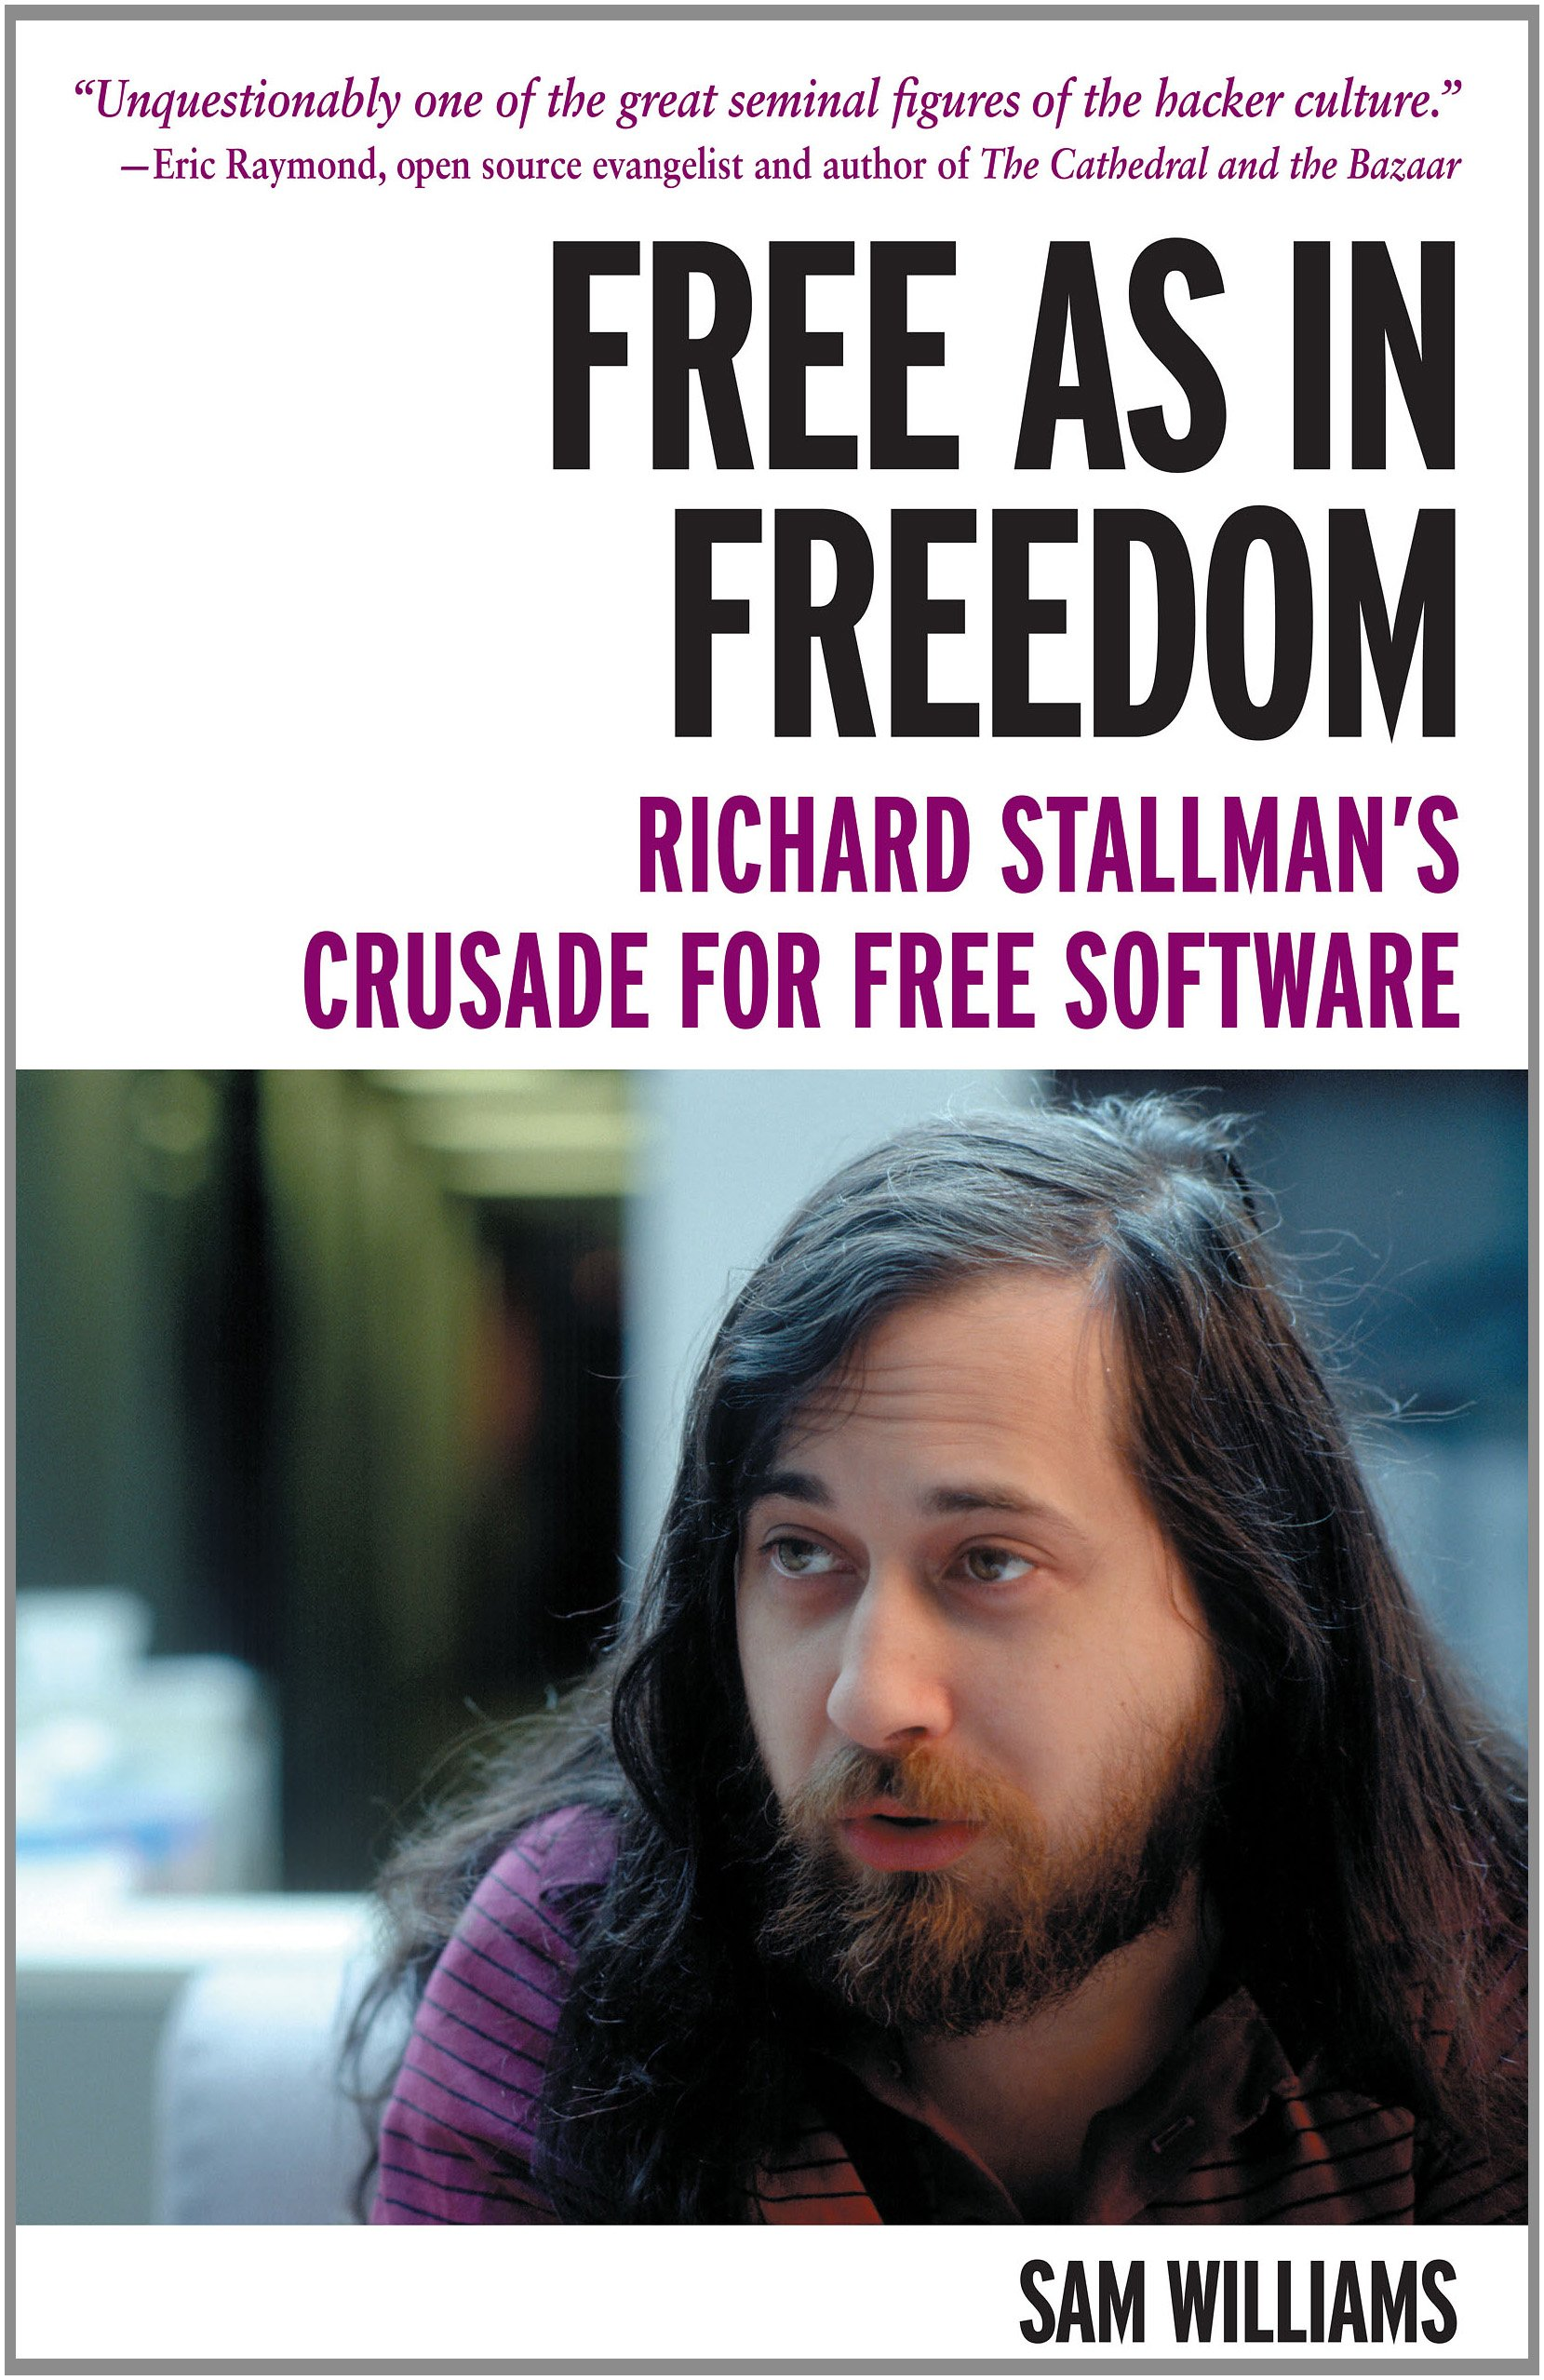 The Cover of Williams's book Free as in Freedom, a biography of Richard Stallman